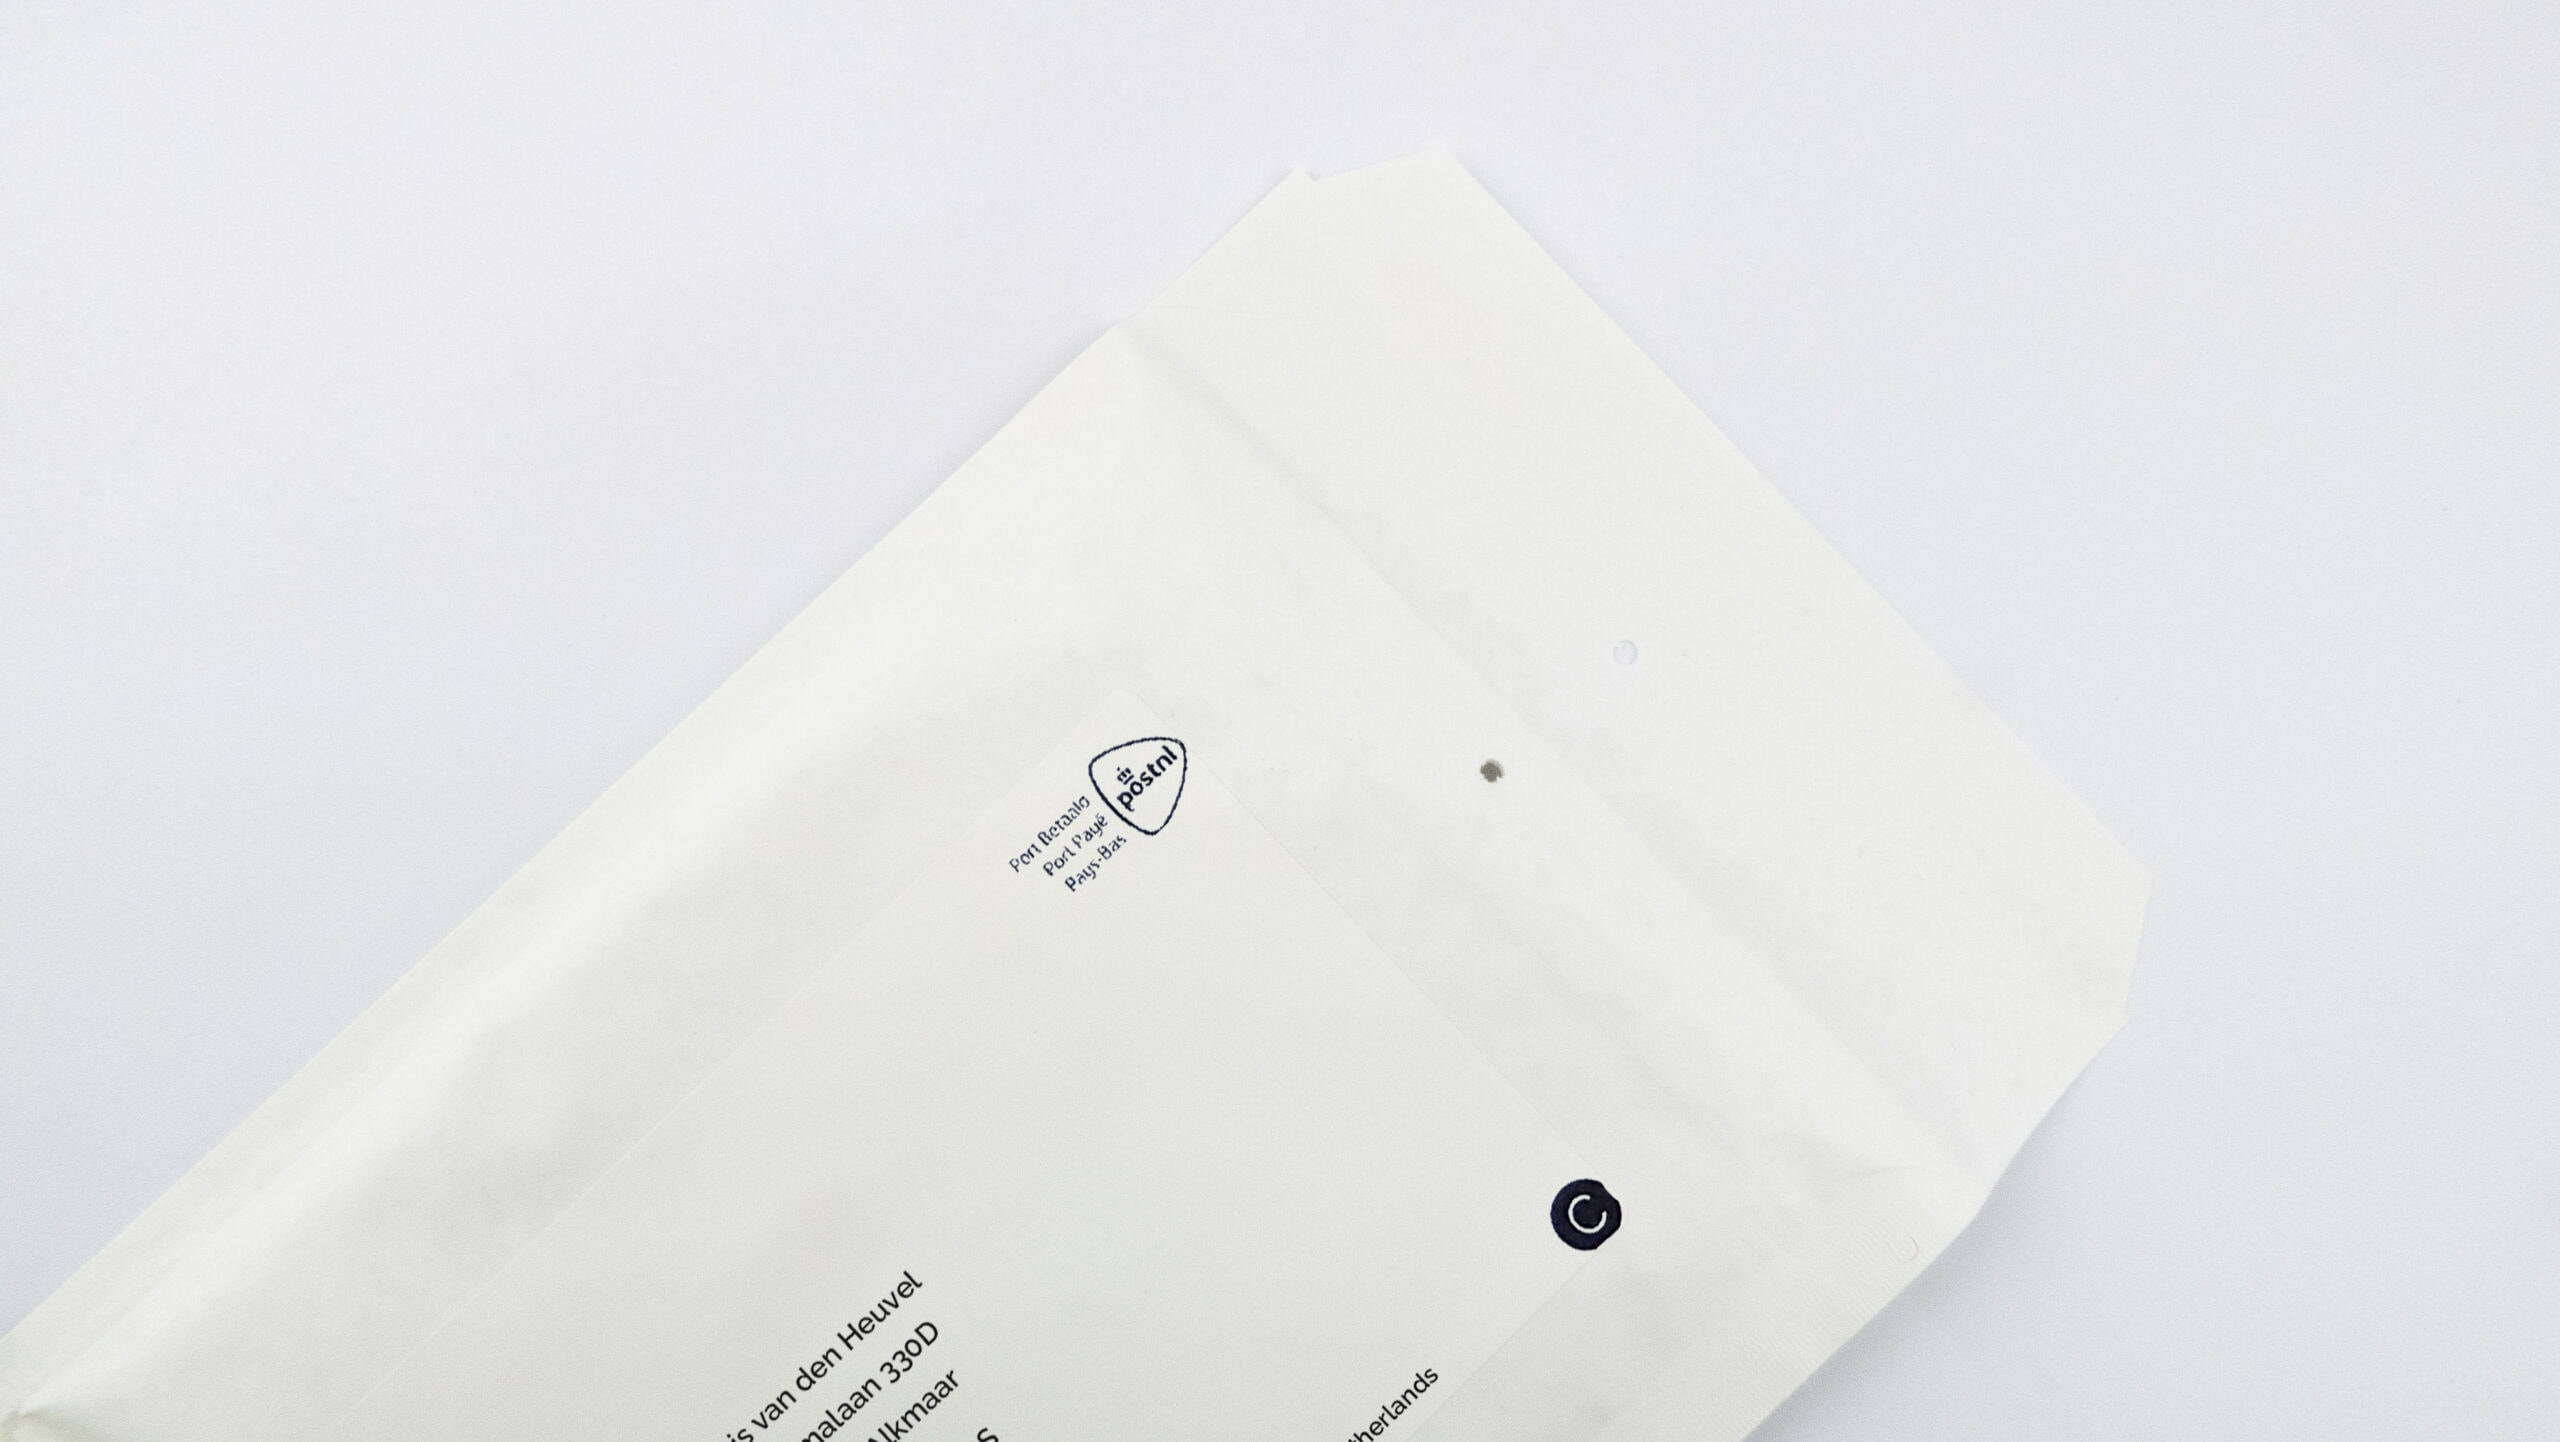 Outer case of Invition standar white label packaging